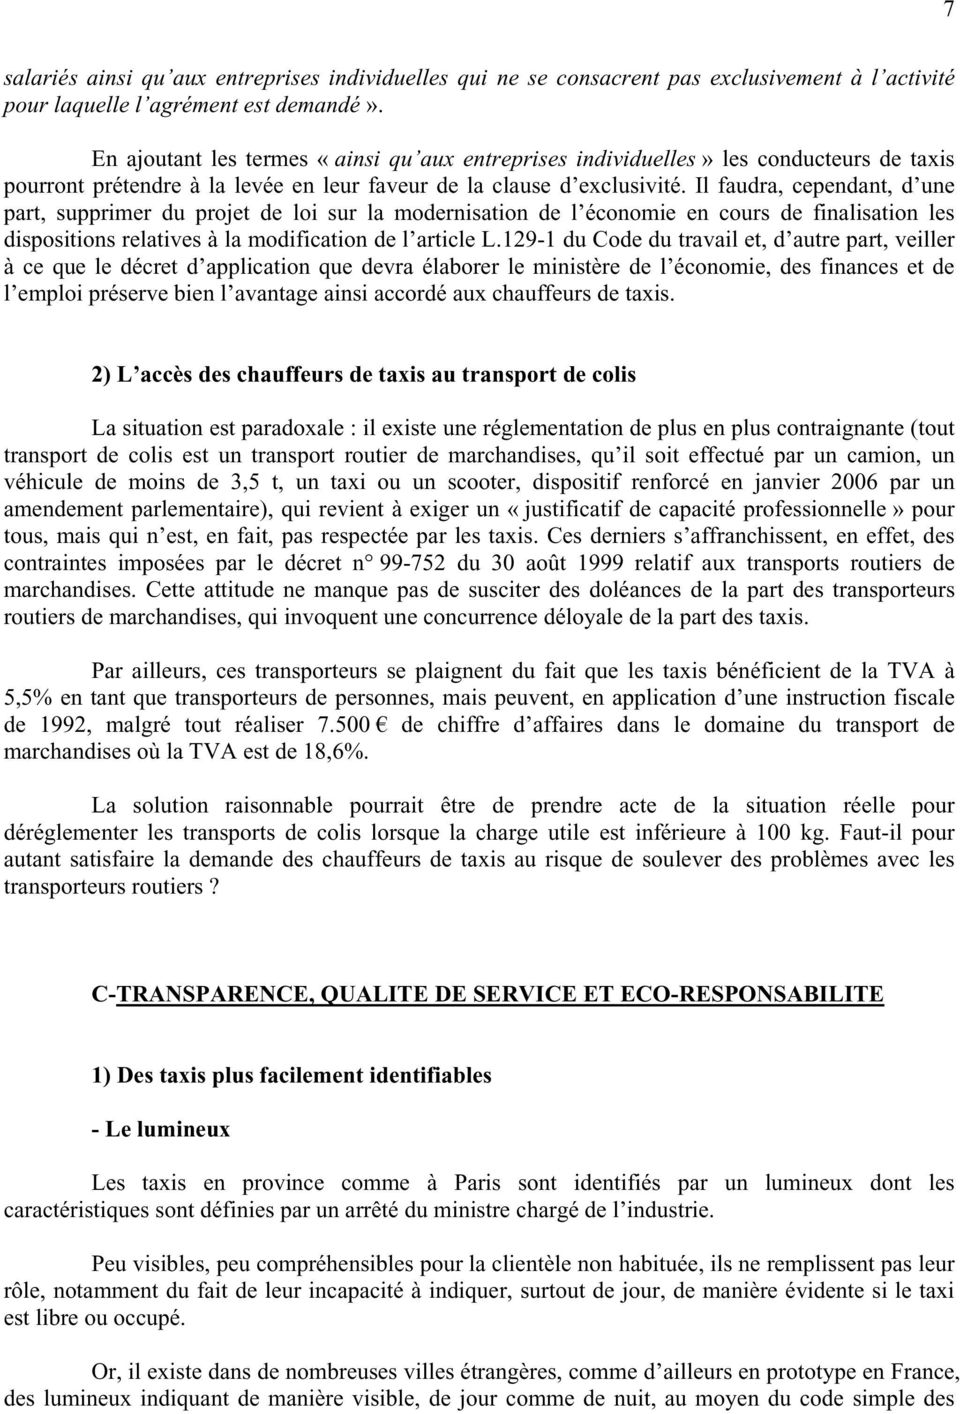 Il faudra, cependant, d une part, supprimer du projet de loi sur la modernisation de l économie en cours de finalisation les dispositions relatives à la modification de l article L.